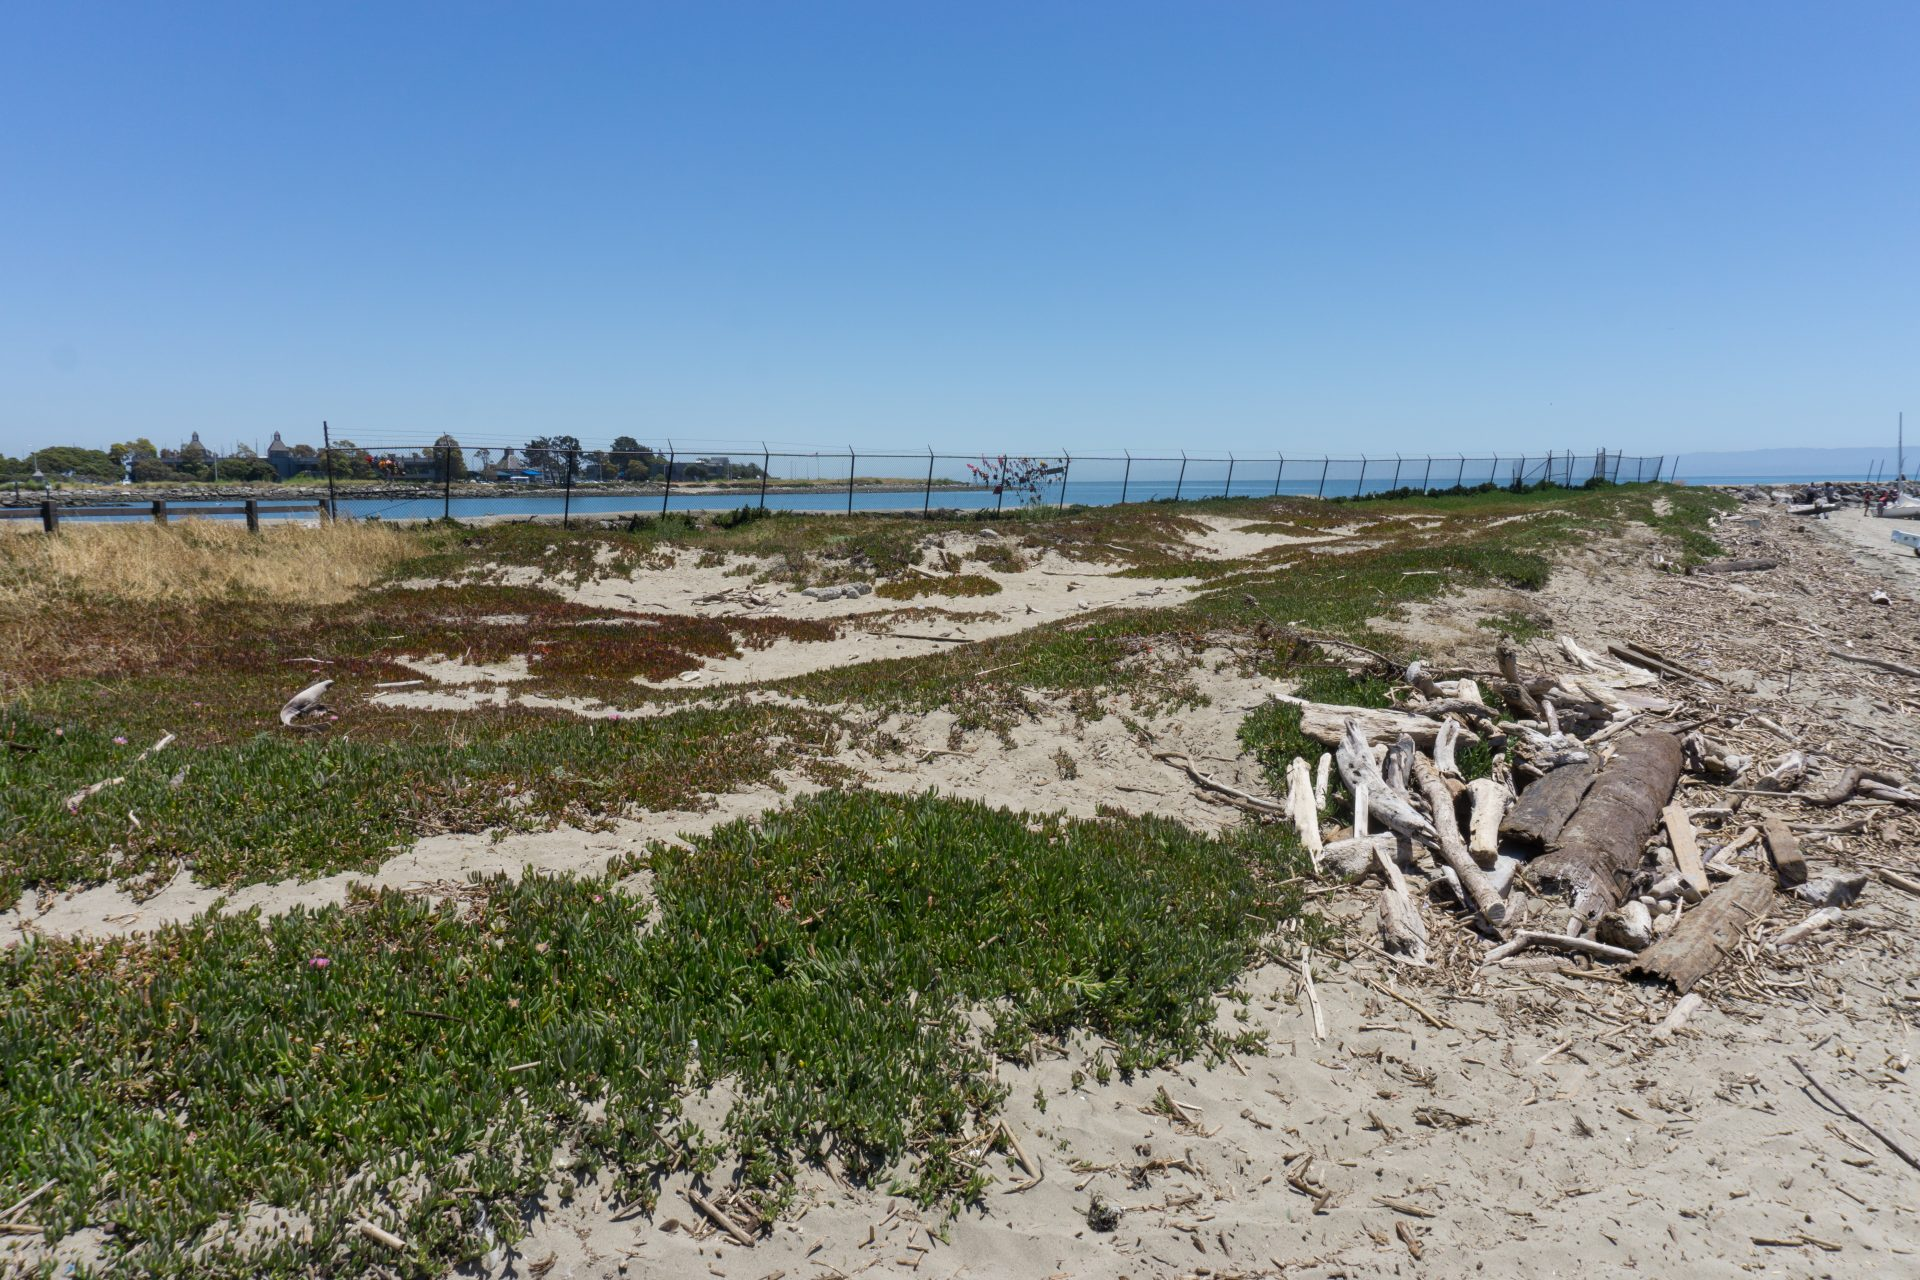 iceplant-covered dunes, driftwood on beach, chainlink fence in distance